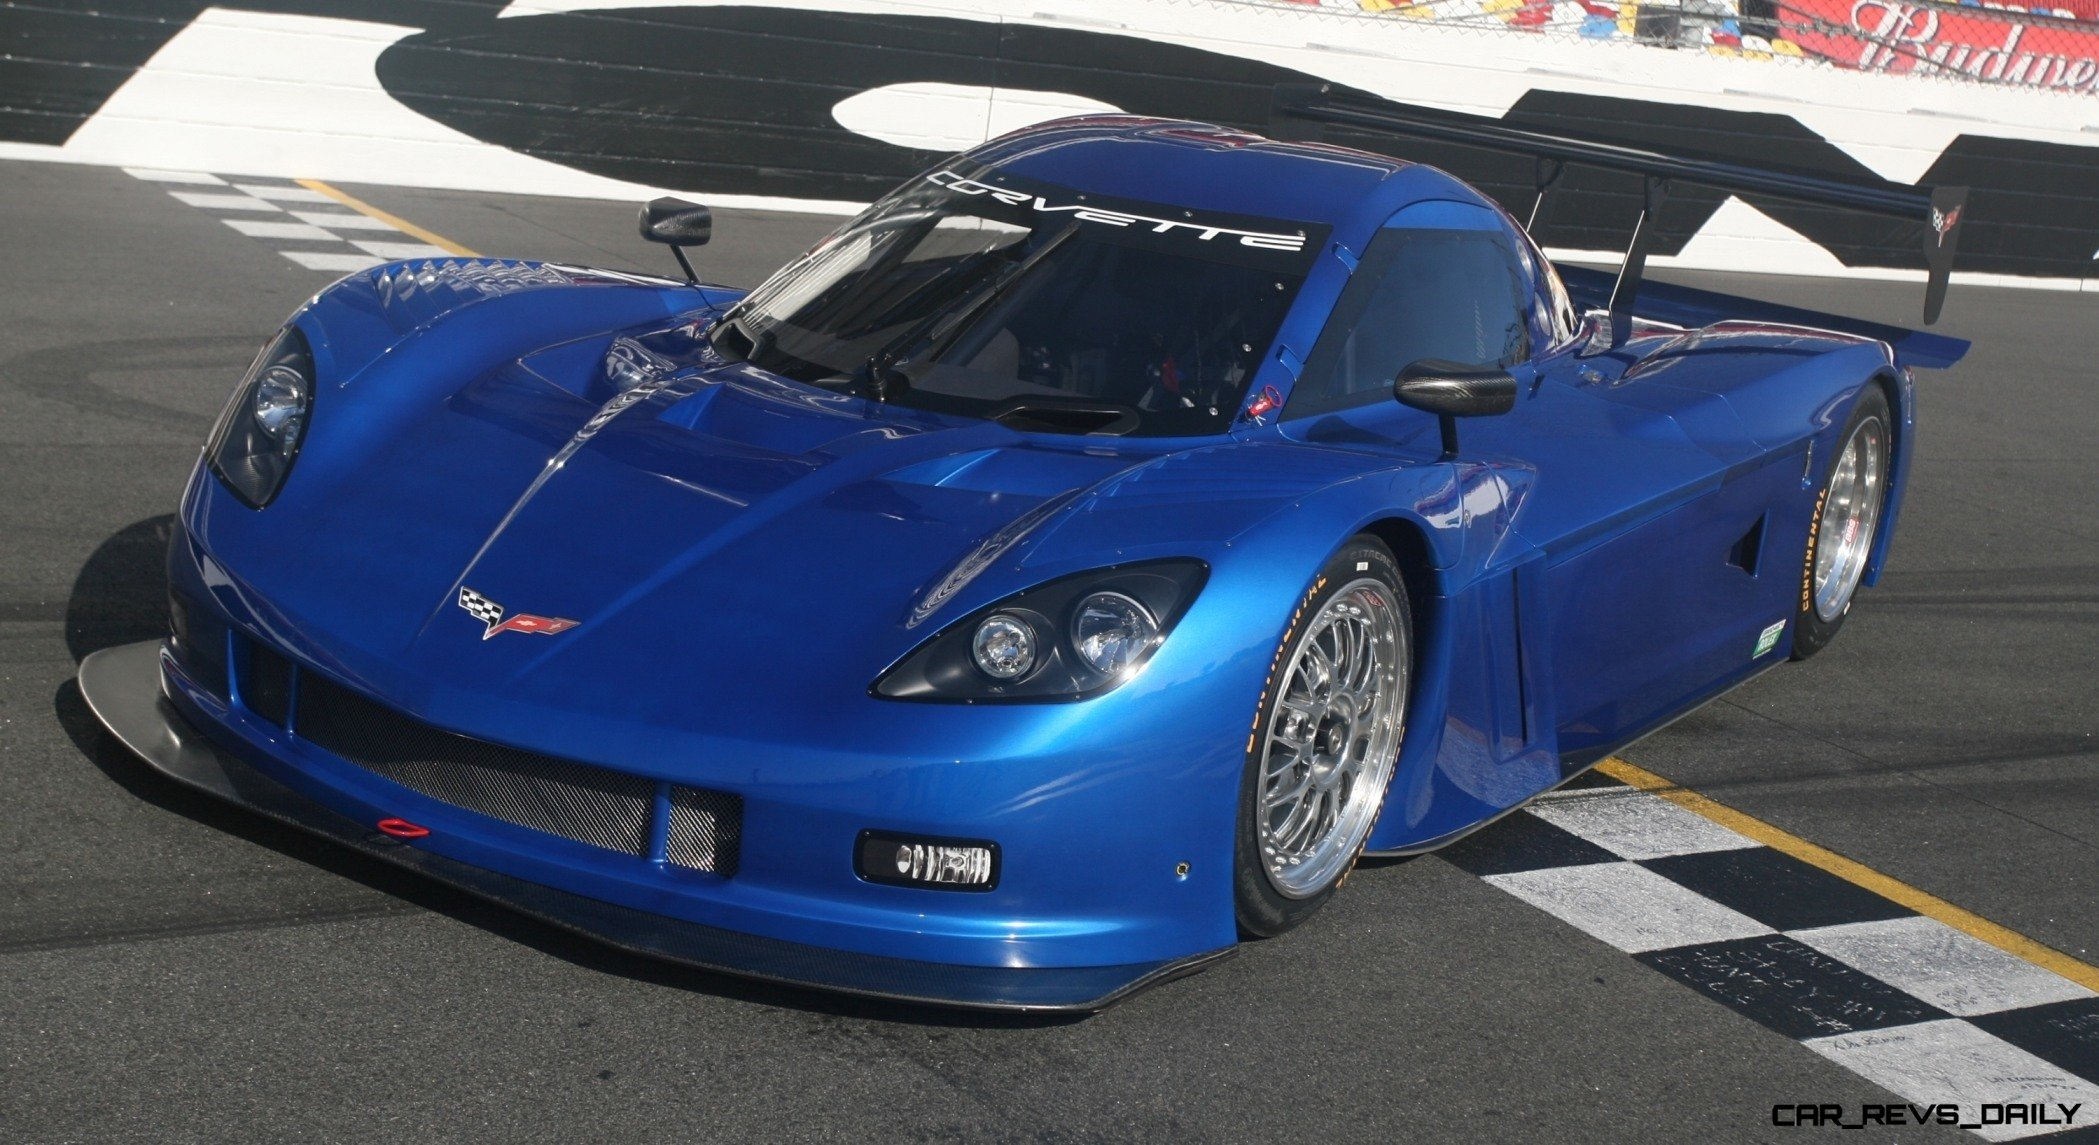 Chevrolet unveiled its 2012 Corvette Daytona Prototype at Daytona International Speedway on Tuesday, November 15, 2011. The Corvette Daytona Prototype will make its competitive debut in the 50th anniversary of the GRAND-AM Road Racing Series Rolex 24 at Daytona next January 26-29, 2012.